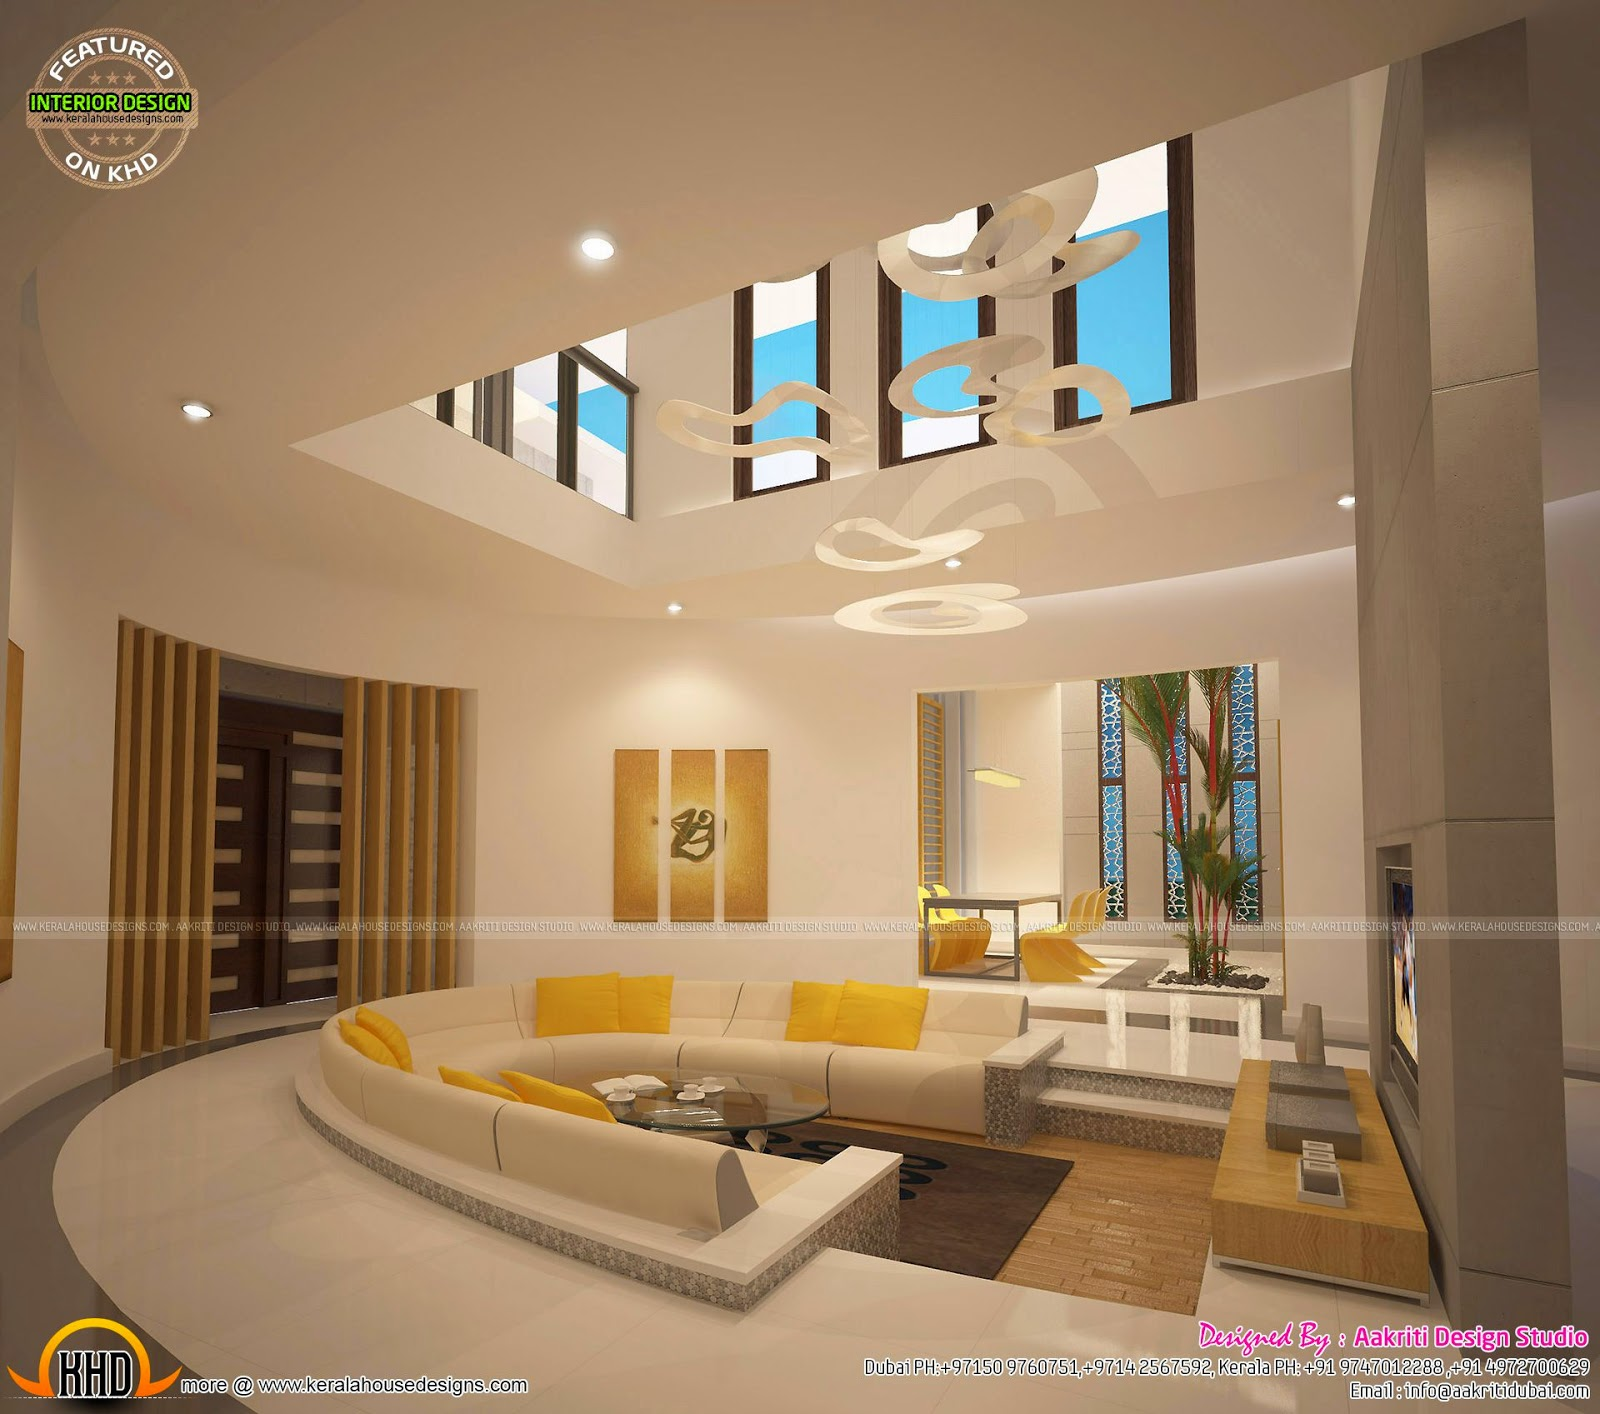 Awesome interiors of living kitchen and bathroom kerala for Interior designs videos